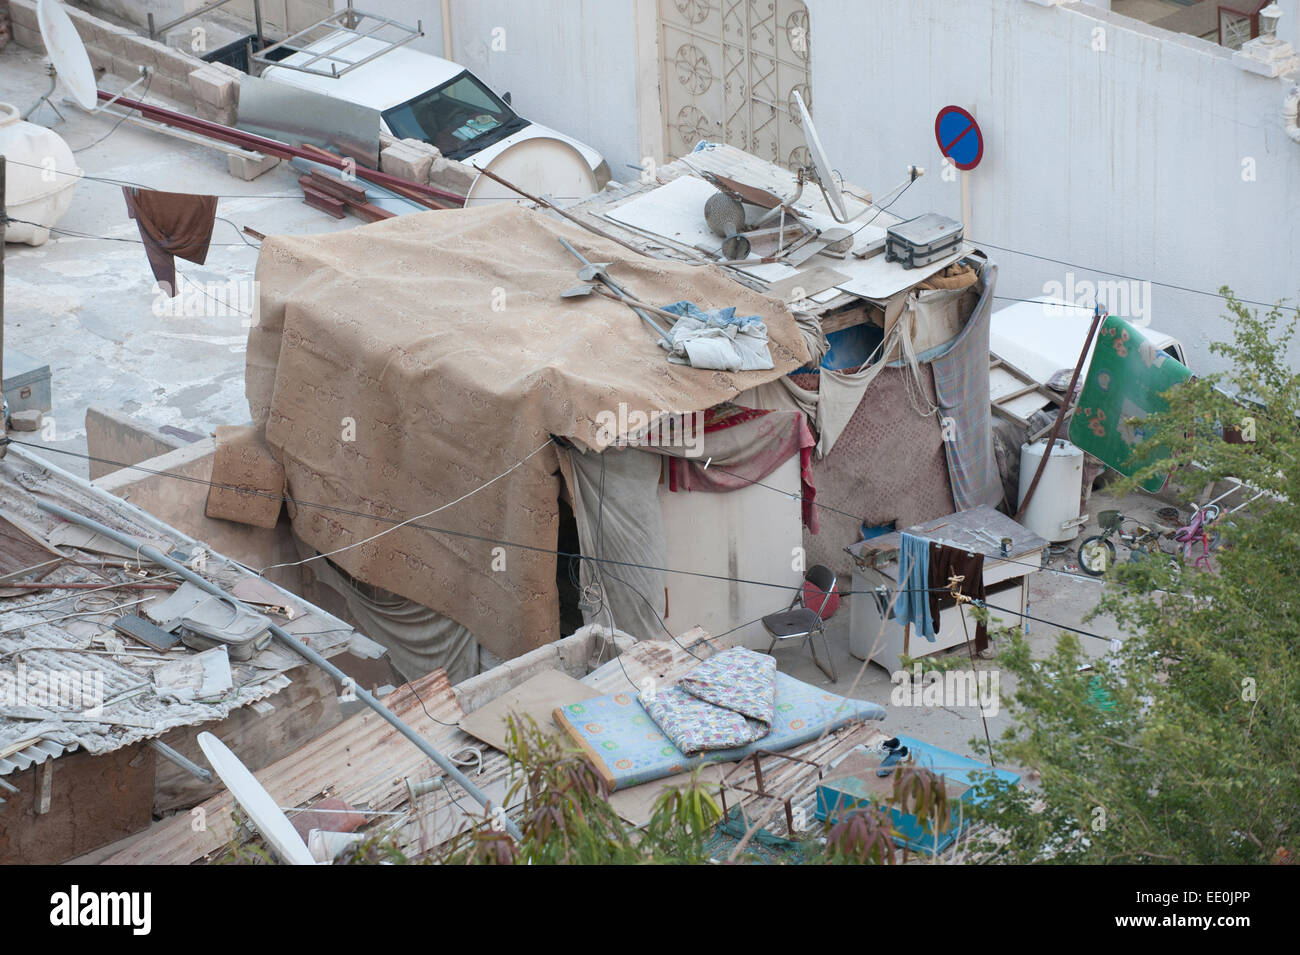 Migrant worker's shack, Old Town Doha, Qatar Stock Photo